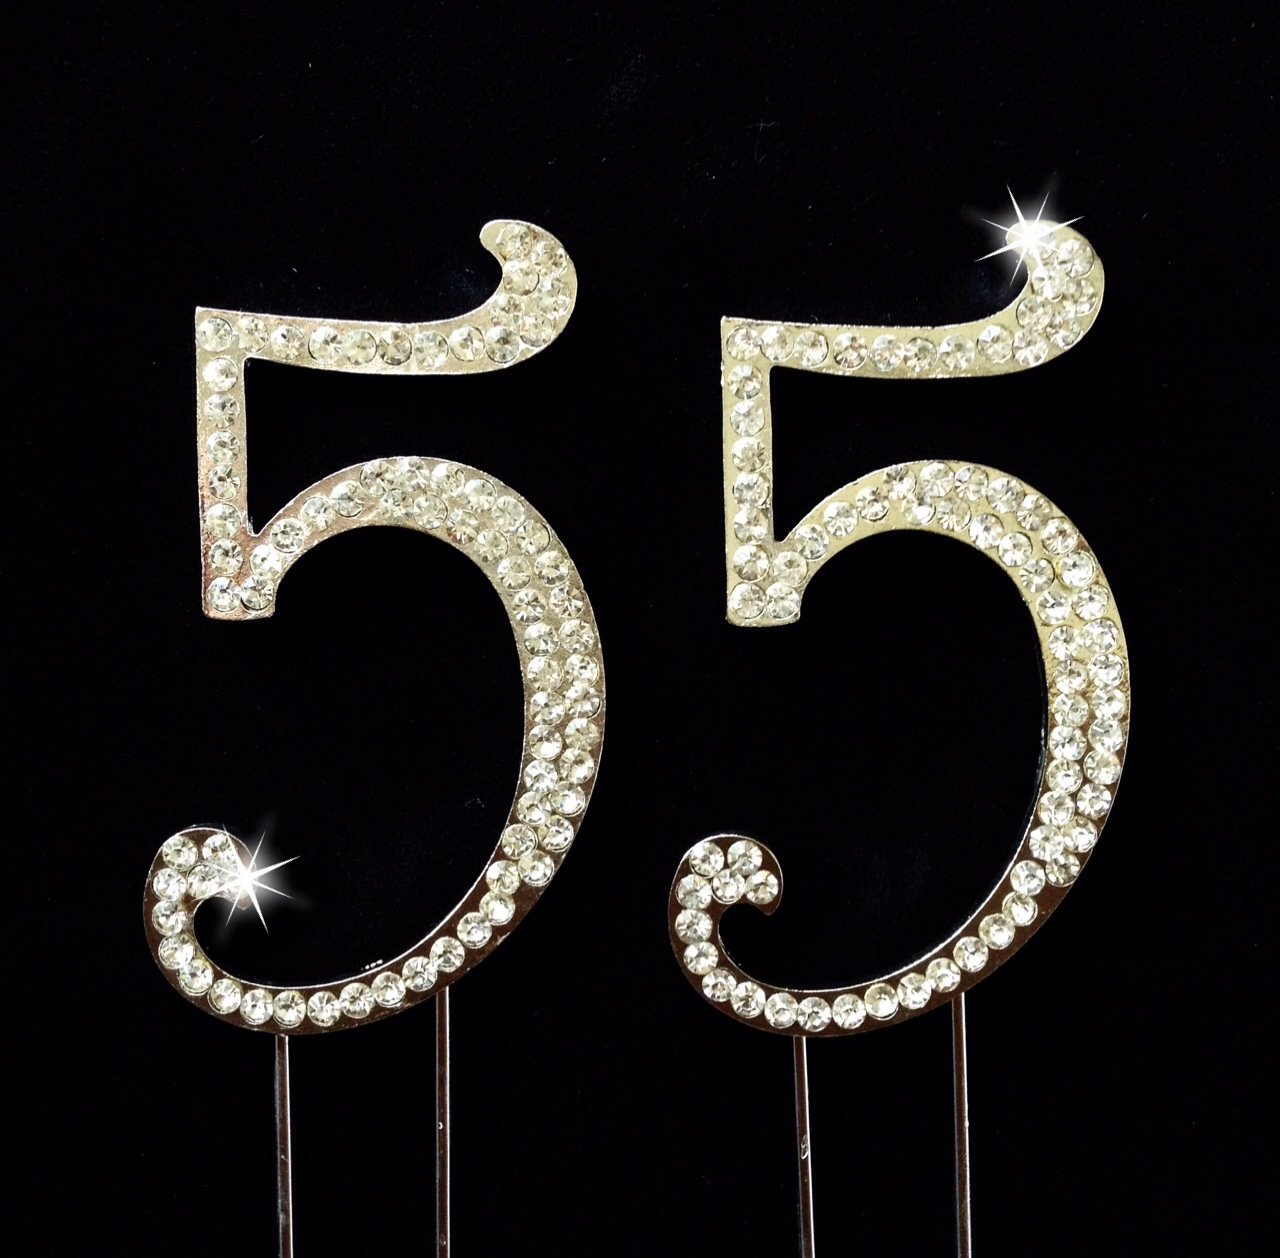 55th Birthdaywedding Anniversary Number Cake Topper With Sparkling